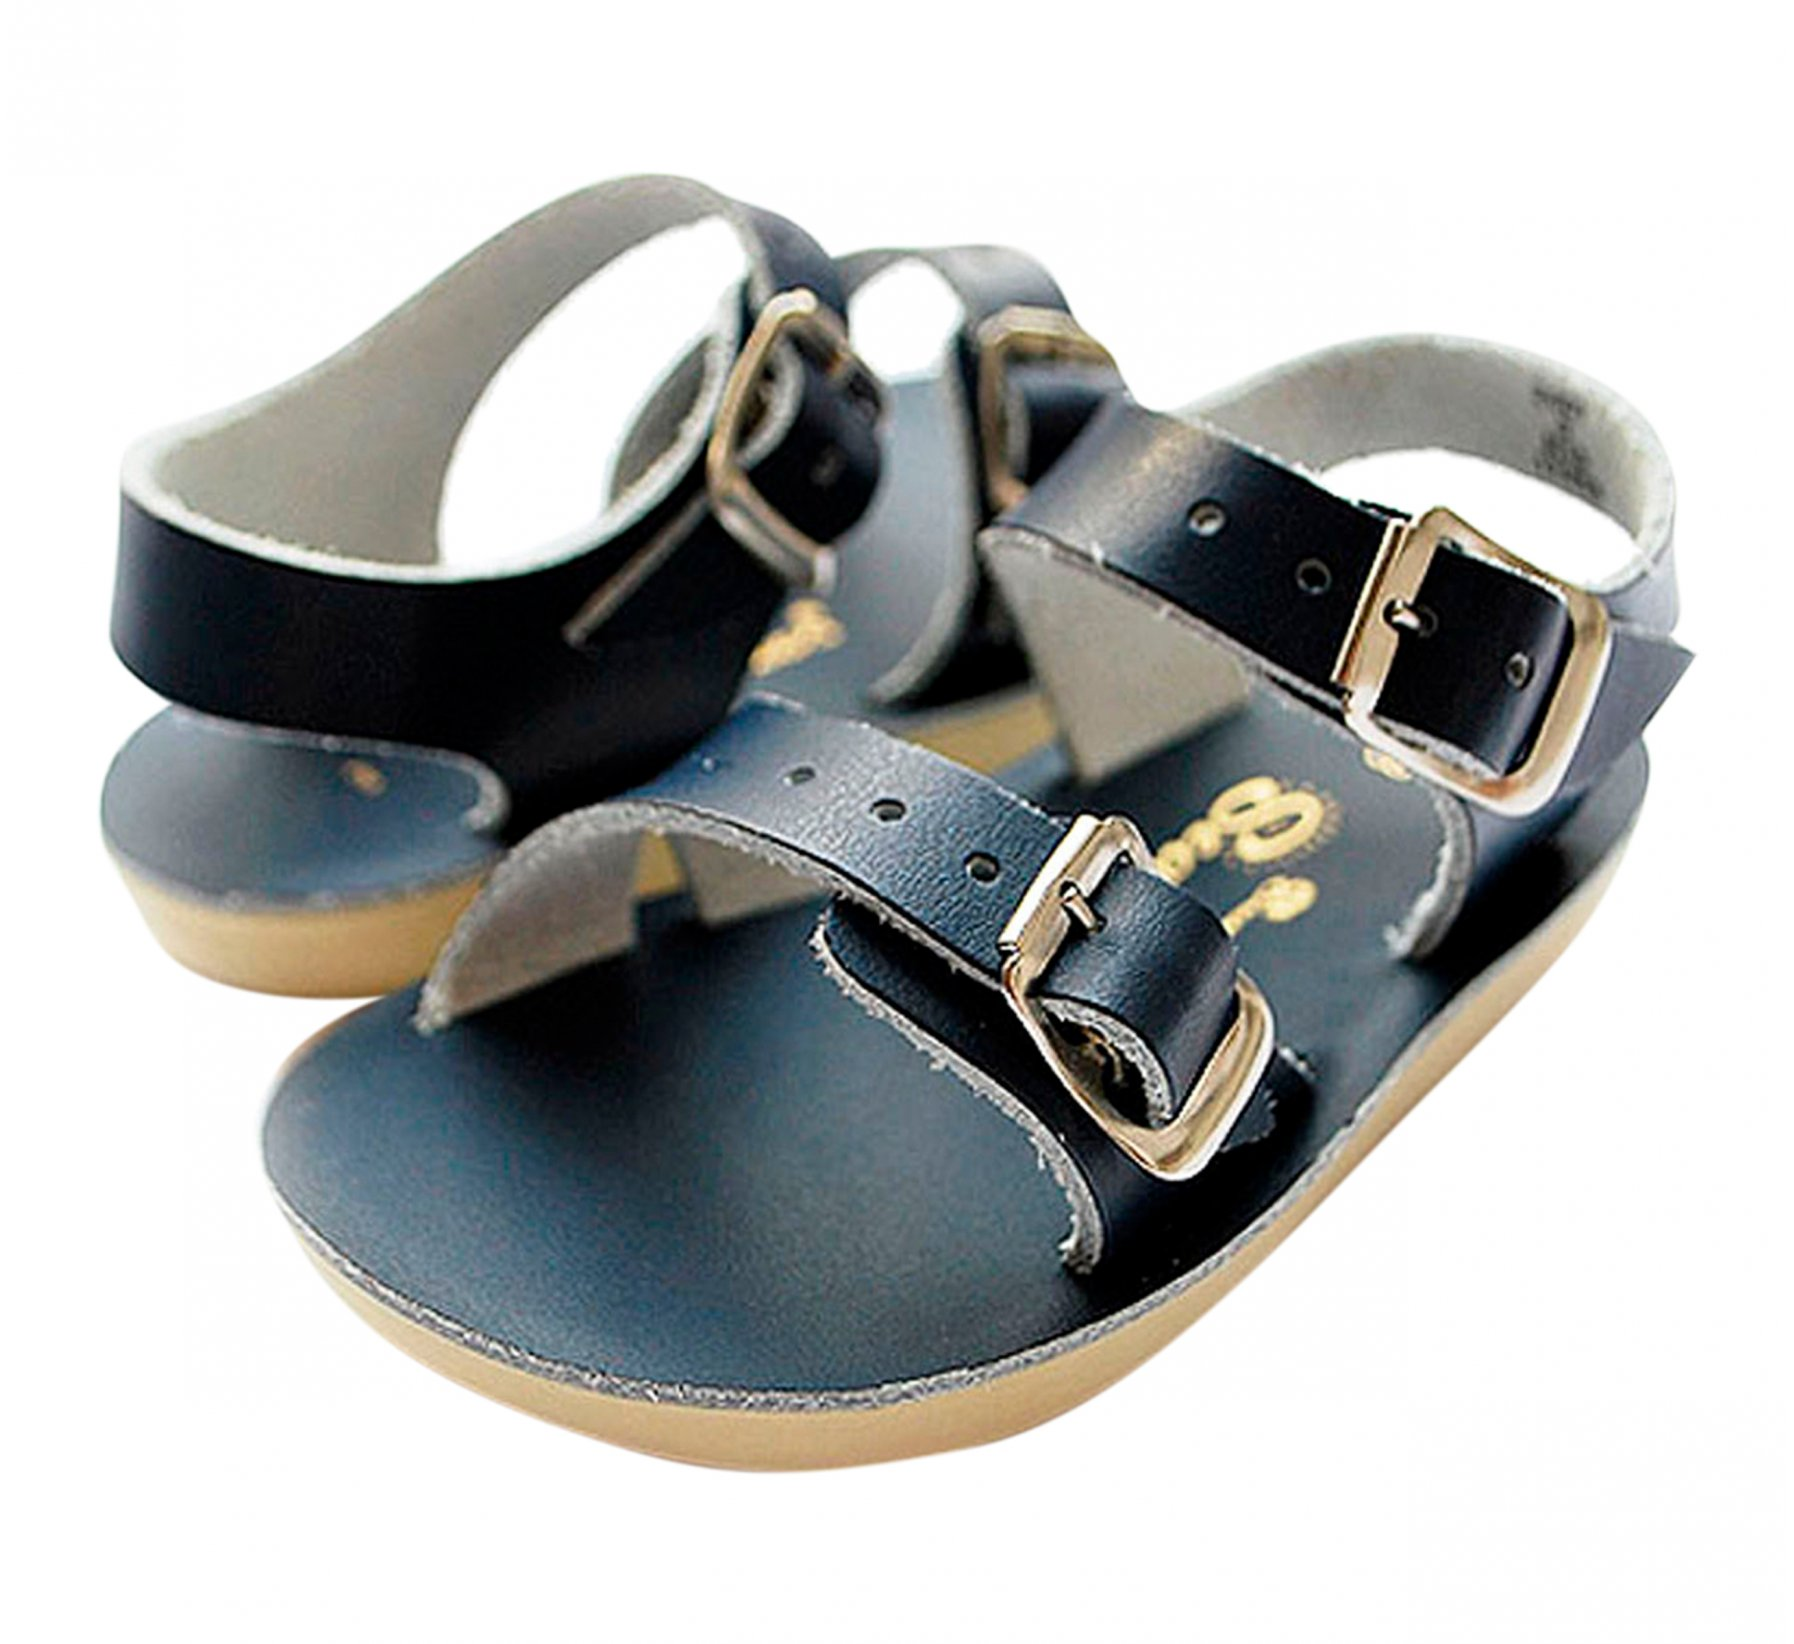 Seawee Bleu Marine  - Salt Water Sandals